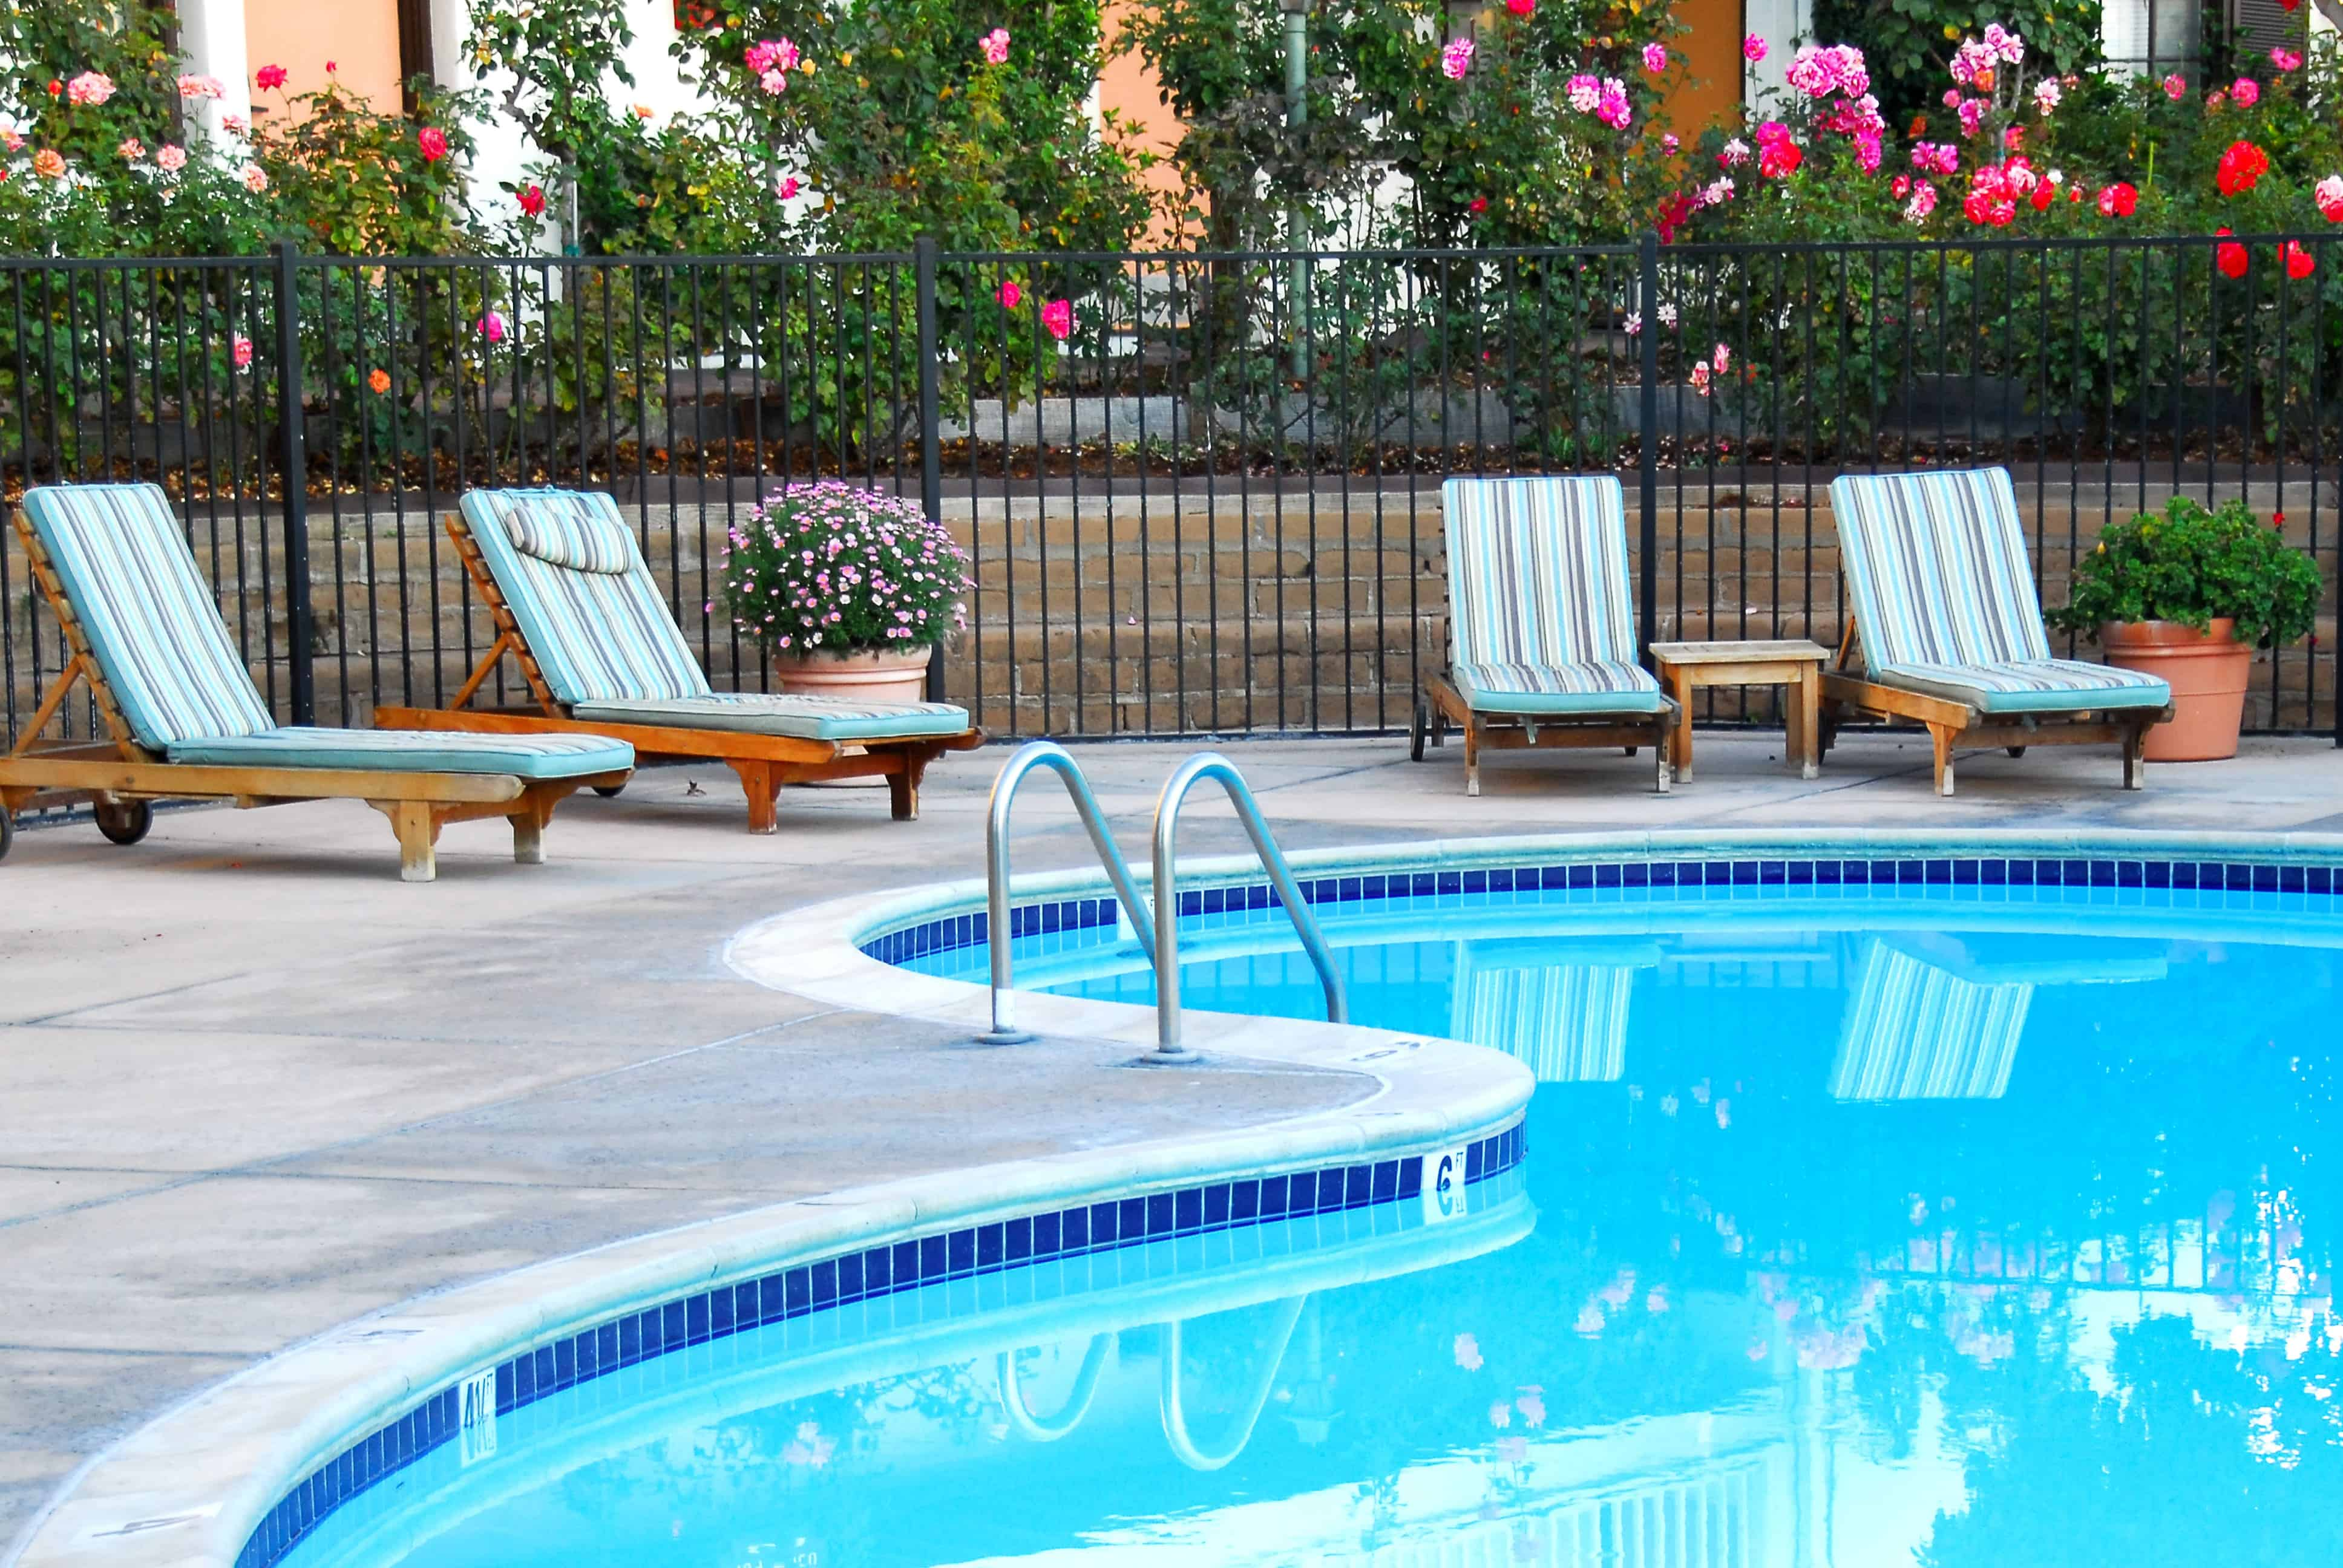 stock-photo-beautiful-swimming-pool-surrounded-by-chairs-and-flowers-26000578-min